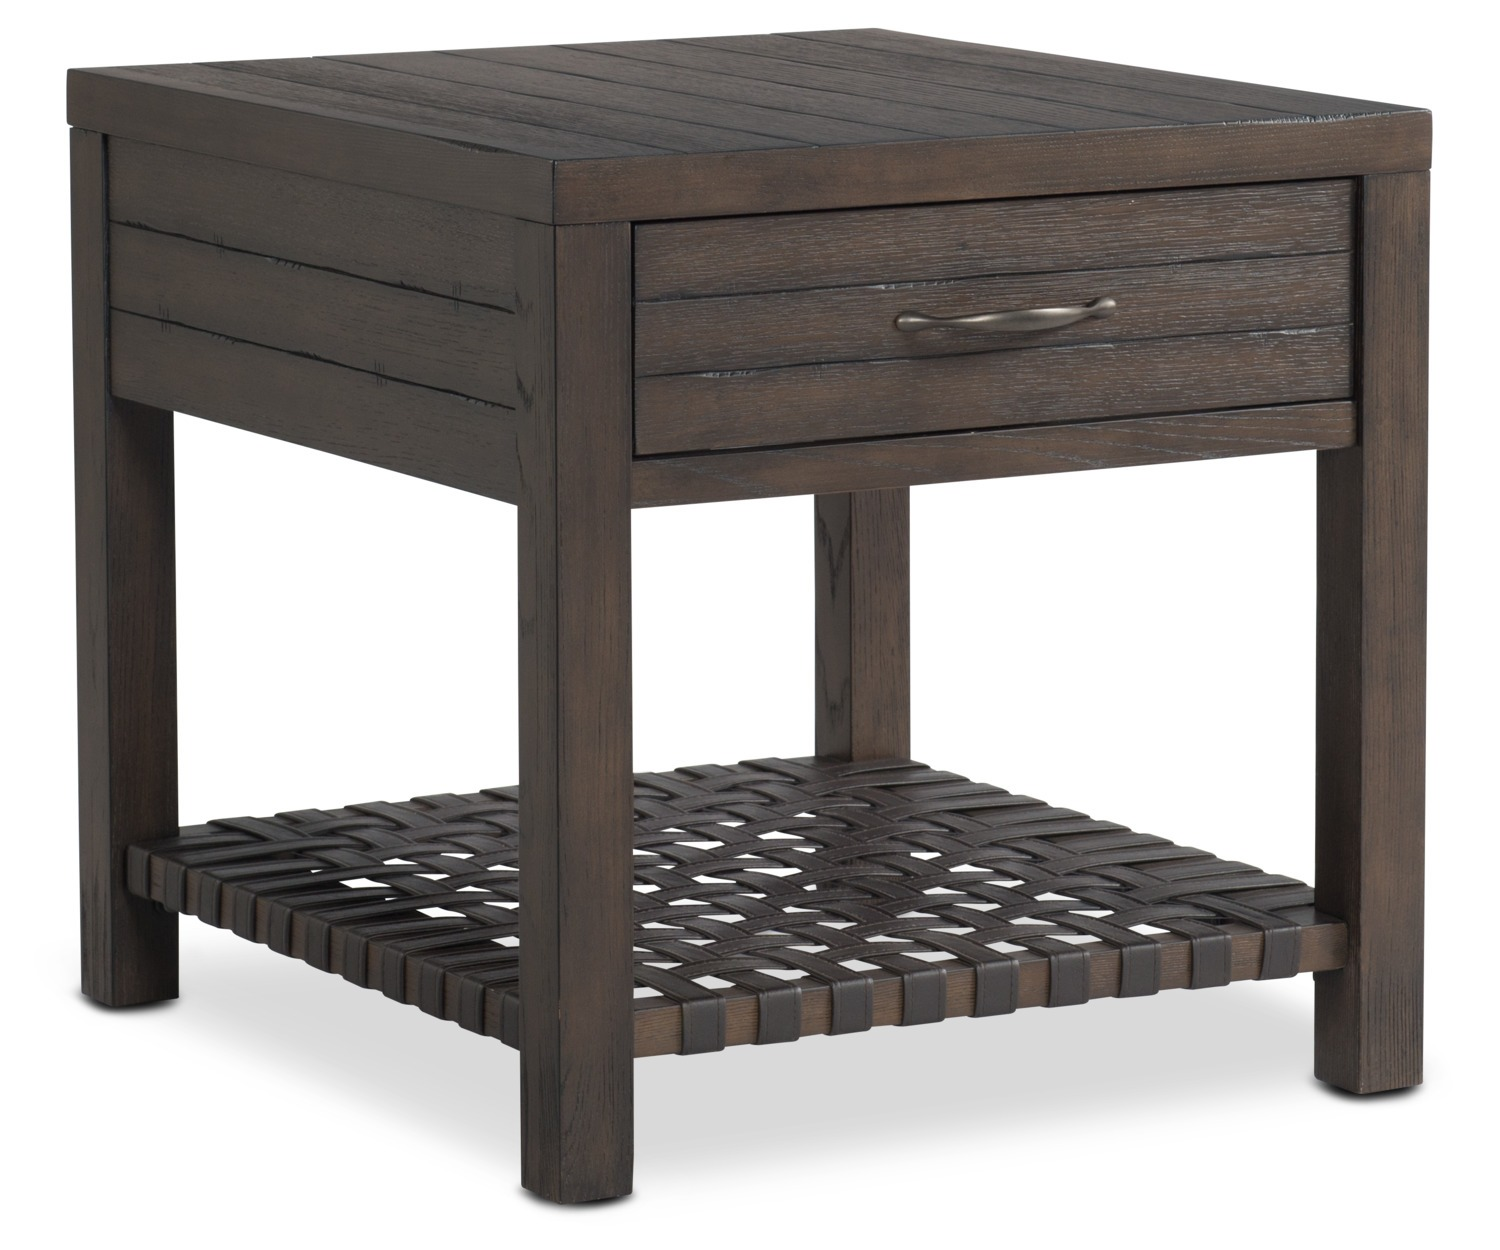 brewer end table dark oak american signature furniture wood accent and occasional garden side tables set two lamps ikea kitchen chairs pottery barn lorraine cement outdoor coffee